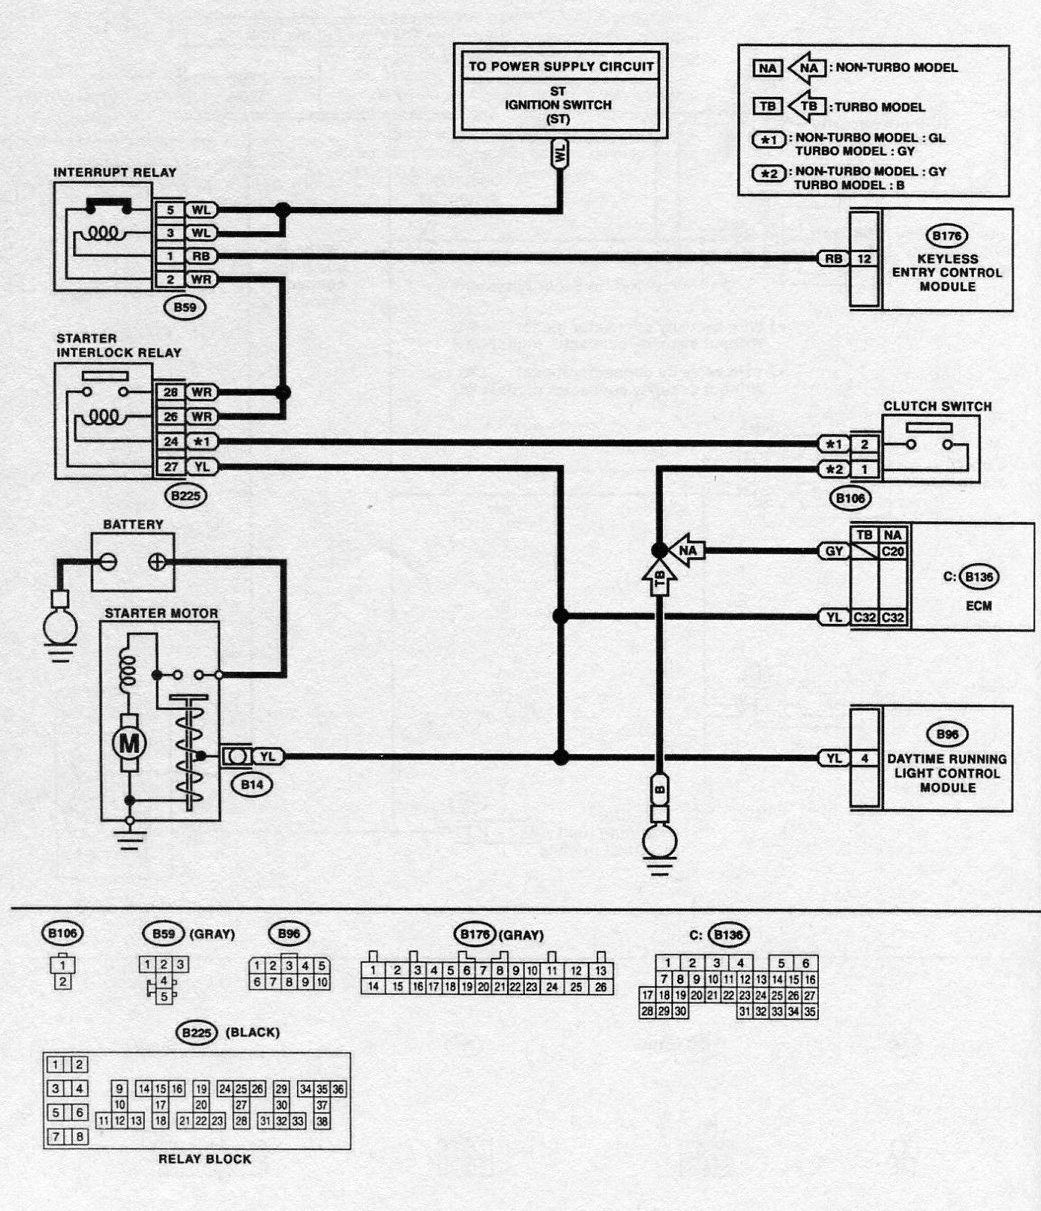 Engine Immobilizer Wiring Diagram Subaru Immobiliser Schematics And Diagrams After Programming Keyless Fob Intermittent Starting Issues